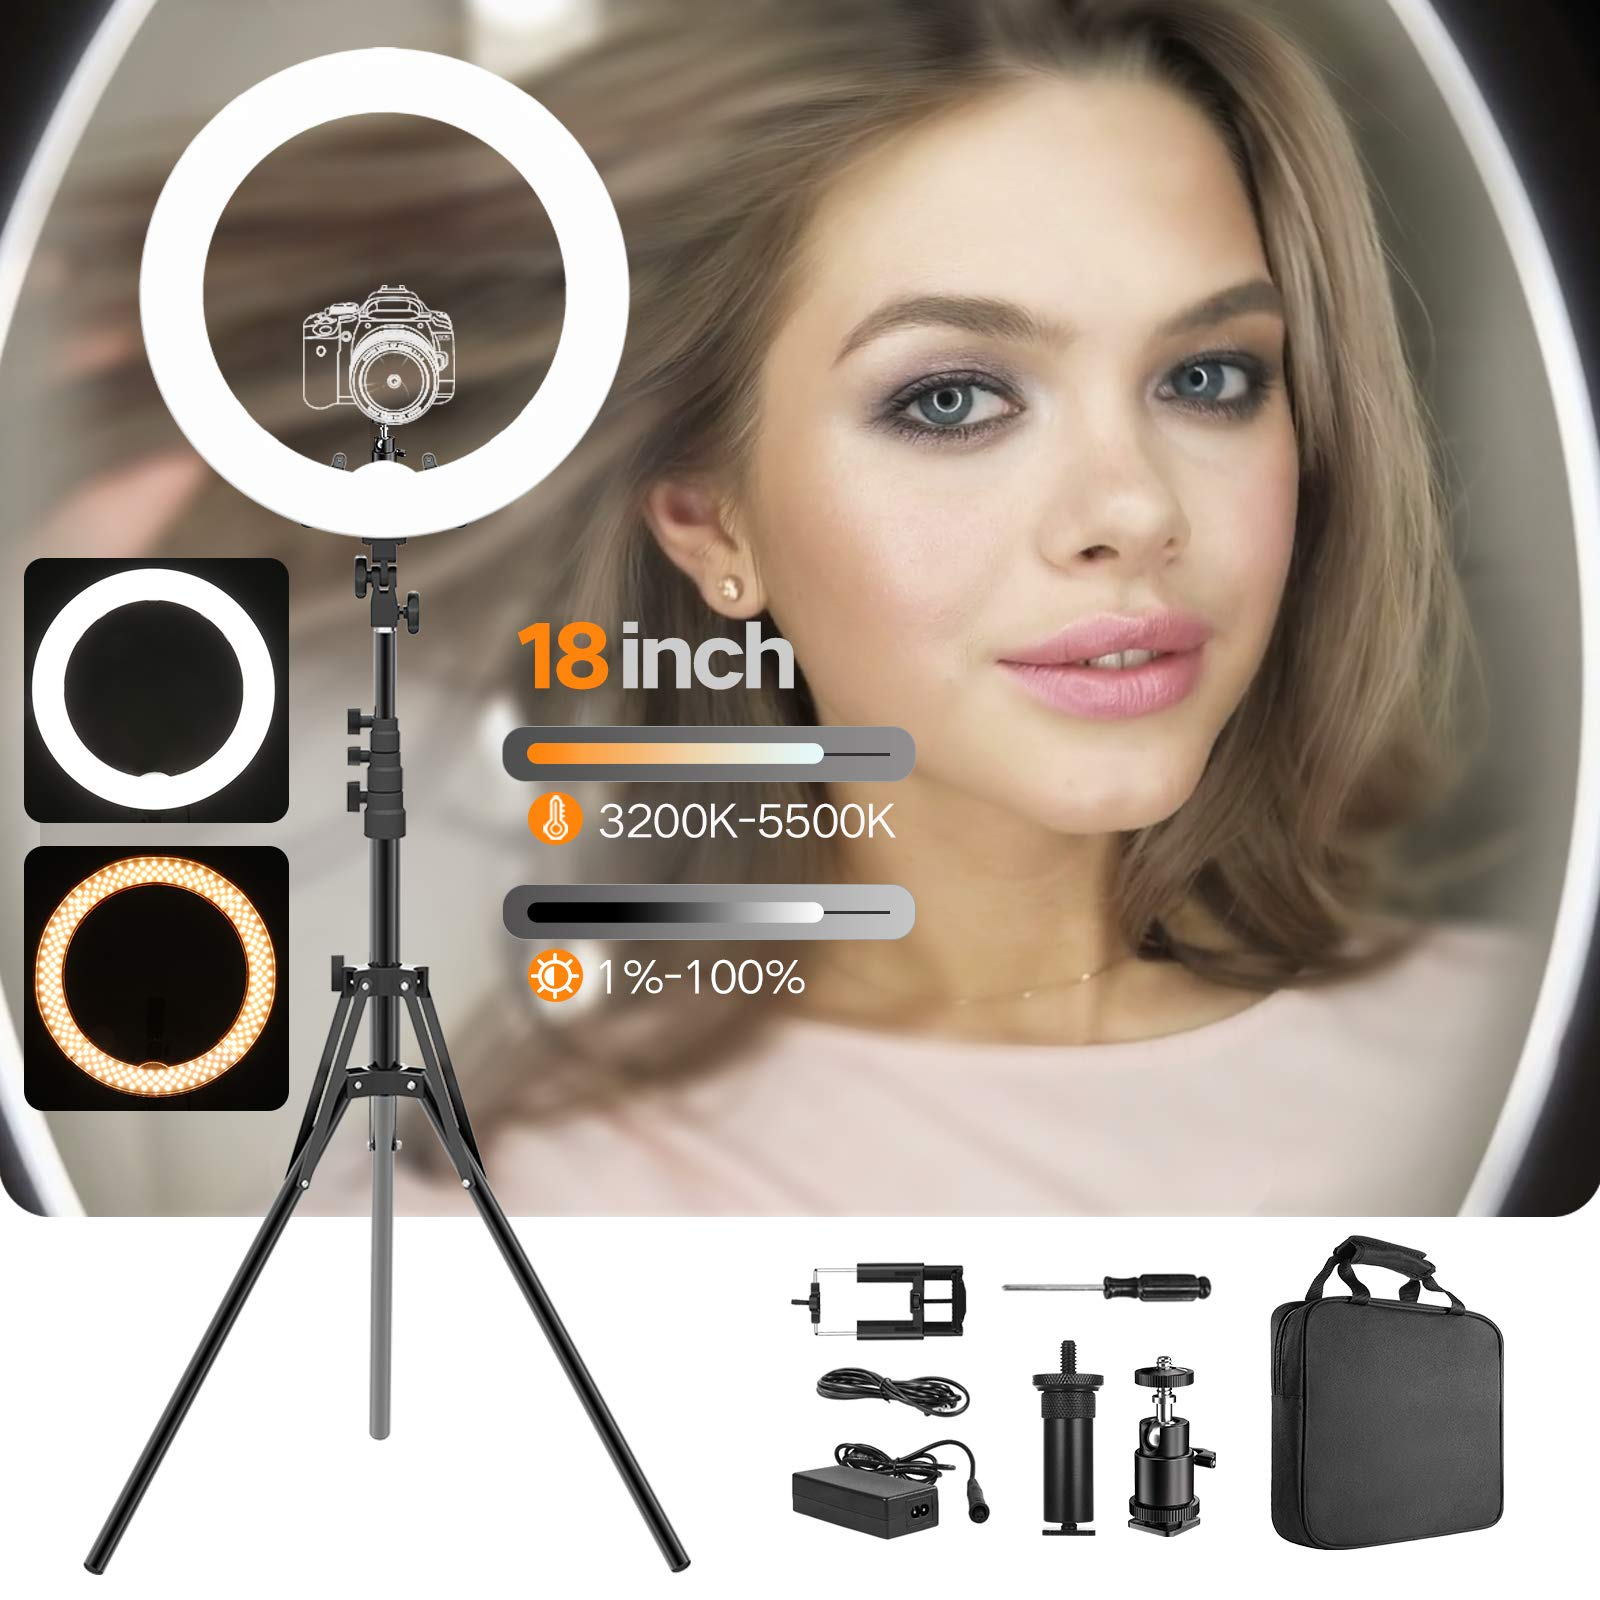 Ring Light Kit 18'' 48cm Outer 55W 5500K Dimmable Led Light Ring with Tripod Stand & Carrying Bag for Camera, Smartphone,Make-Up,YouTube,Portrait Shooting,Live Stream etc by PIXEL (Image #1)